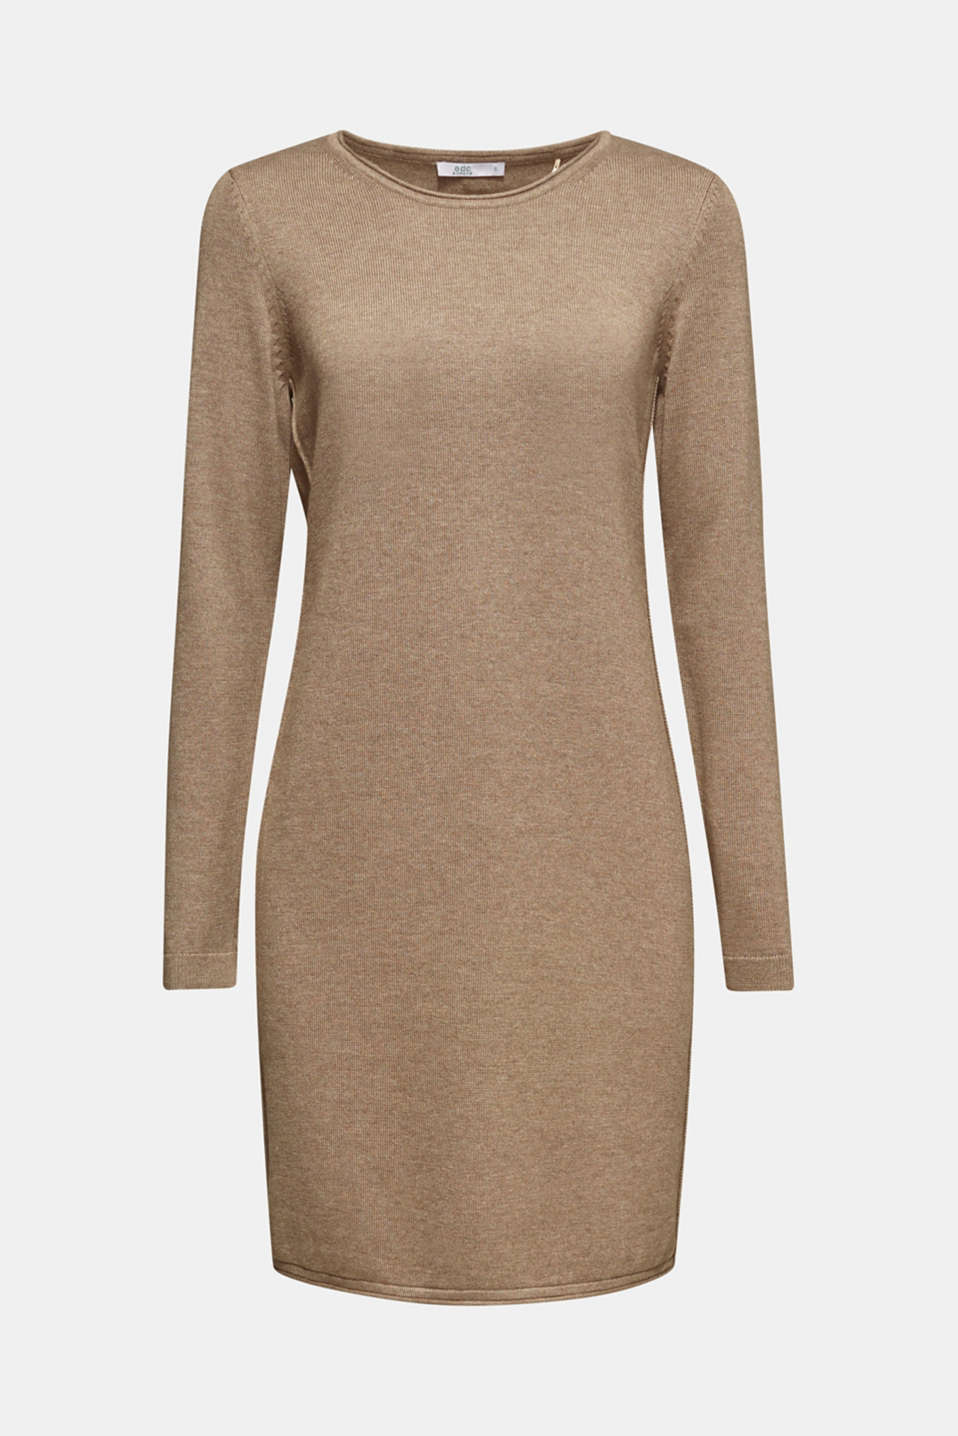 Dresses flat knitted, TAUPE 5, detail image number 8